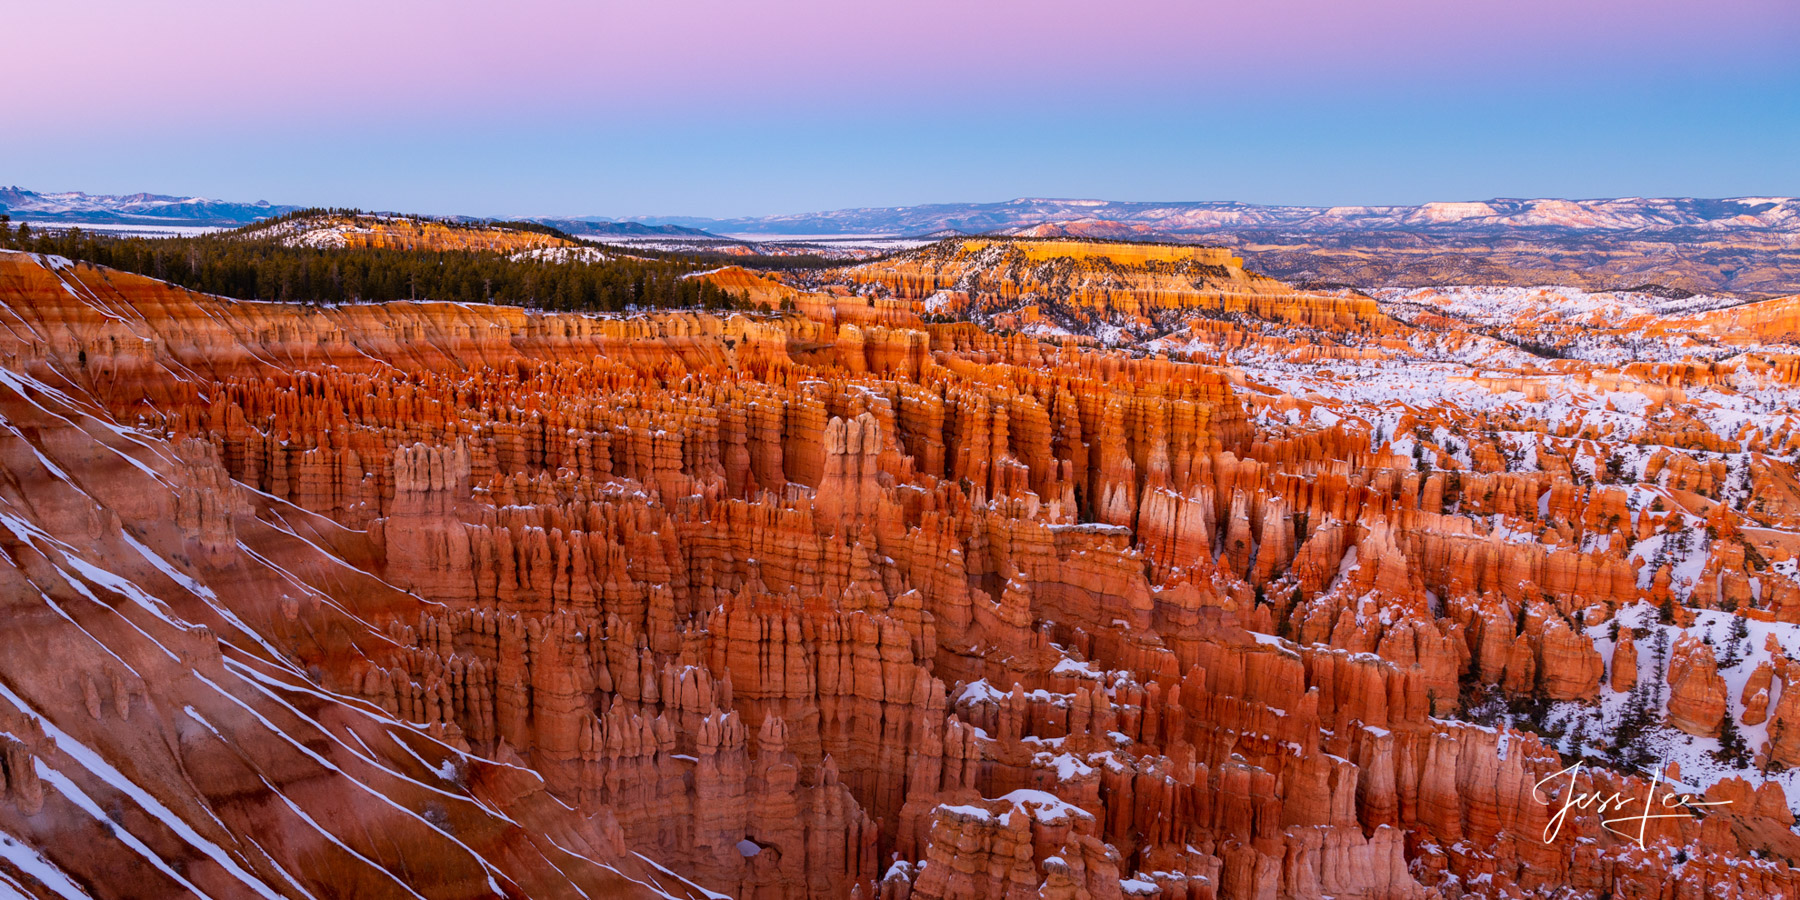 Limited Edition of 50 Exclusive high-resolution Museum Quality Fine Art Prints of Bryce Canyon Panorama Photography. Photos copyright...